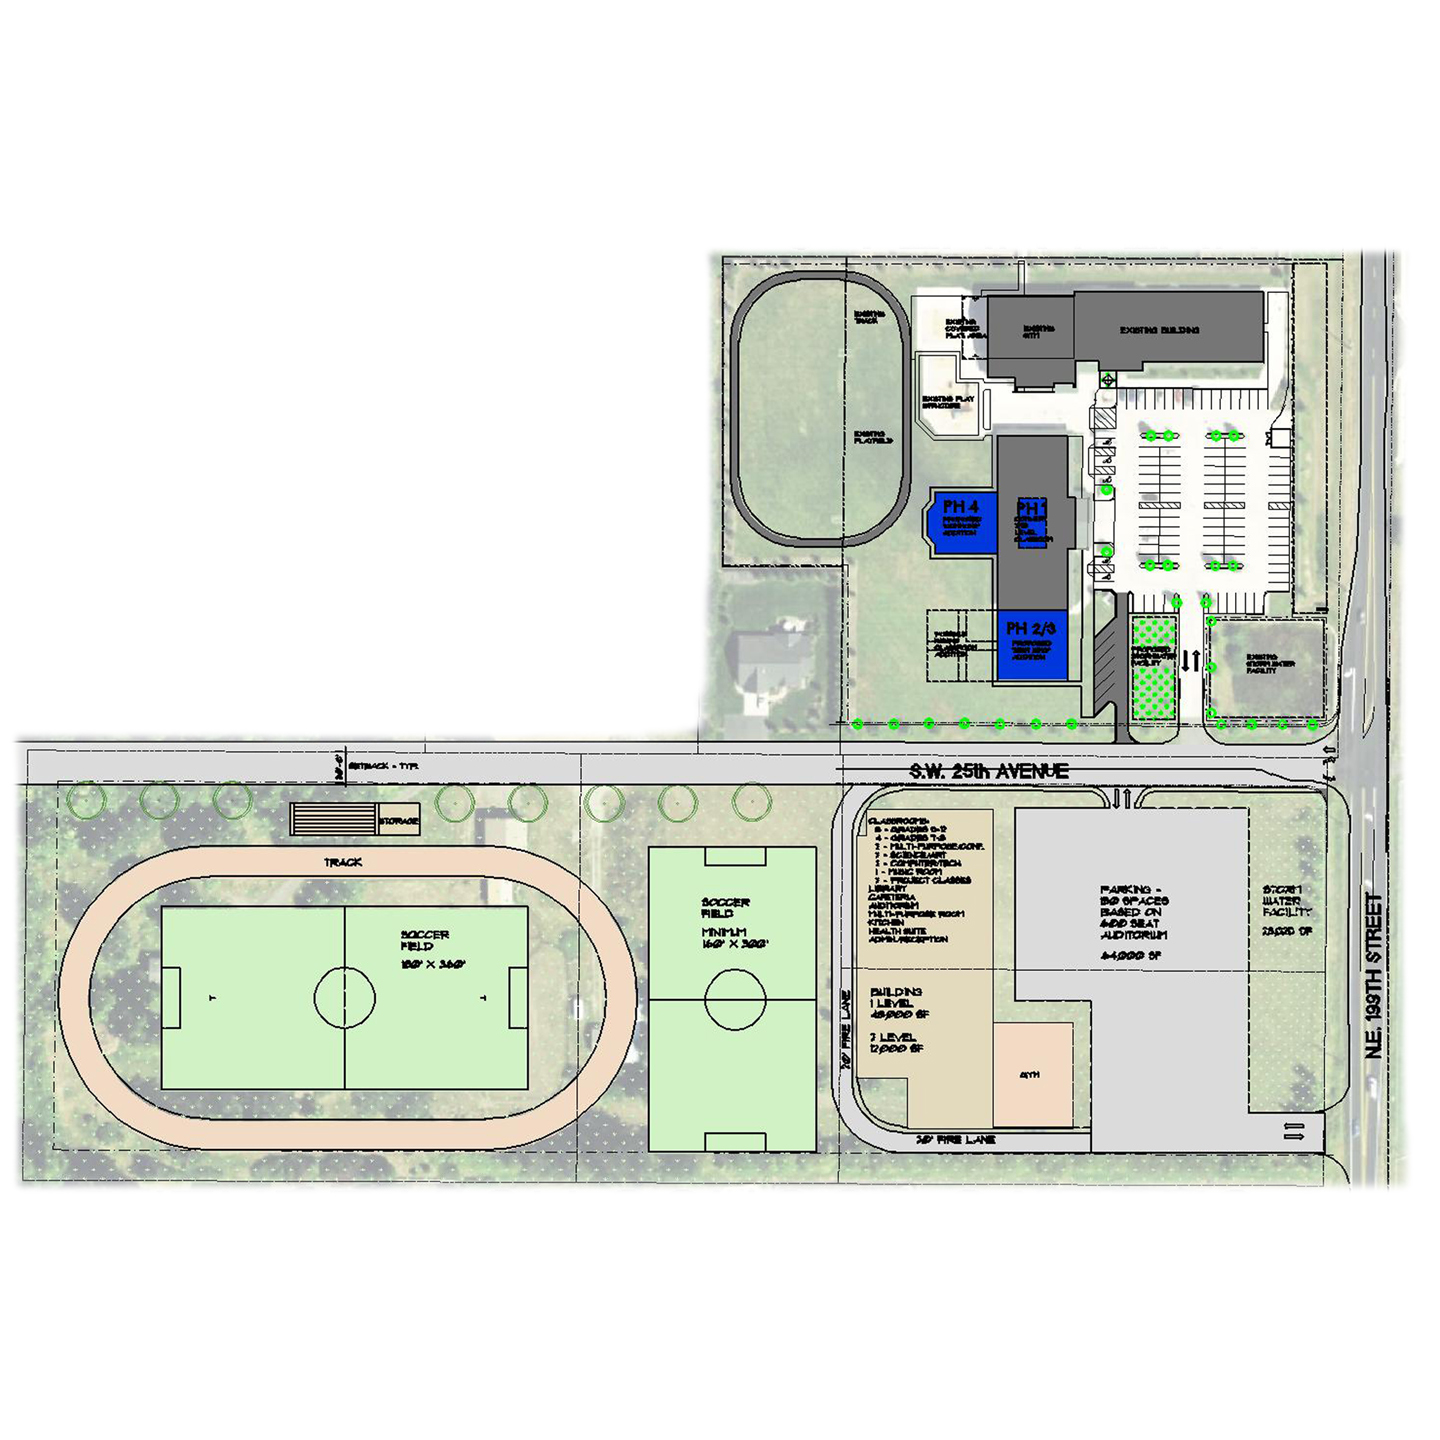 FFCS – Overall Site Plan